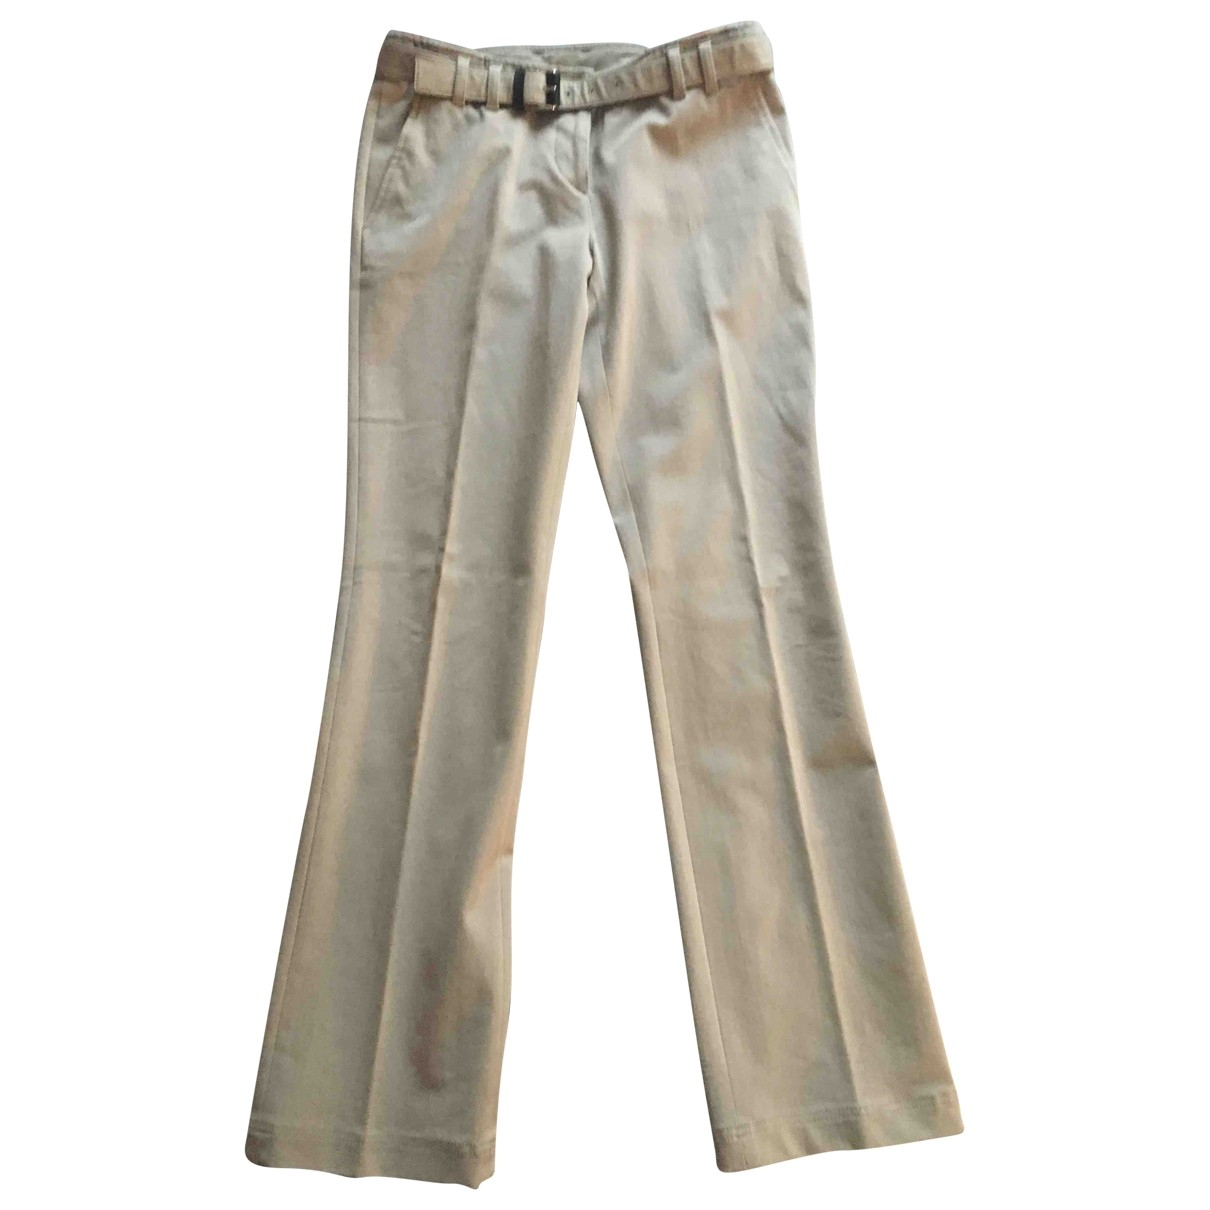 Prada \N Beige Cotton Trousers for Women 40 IT